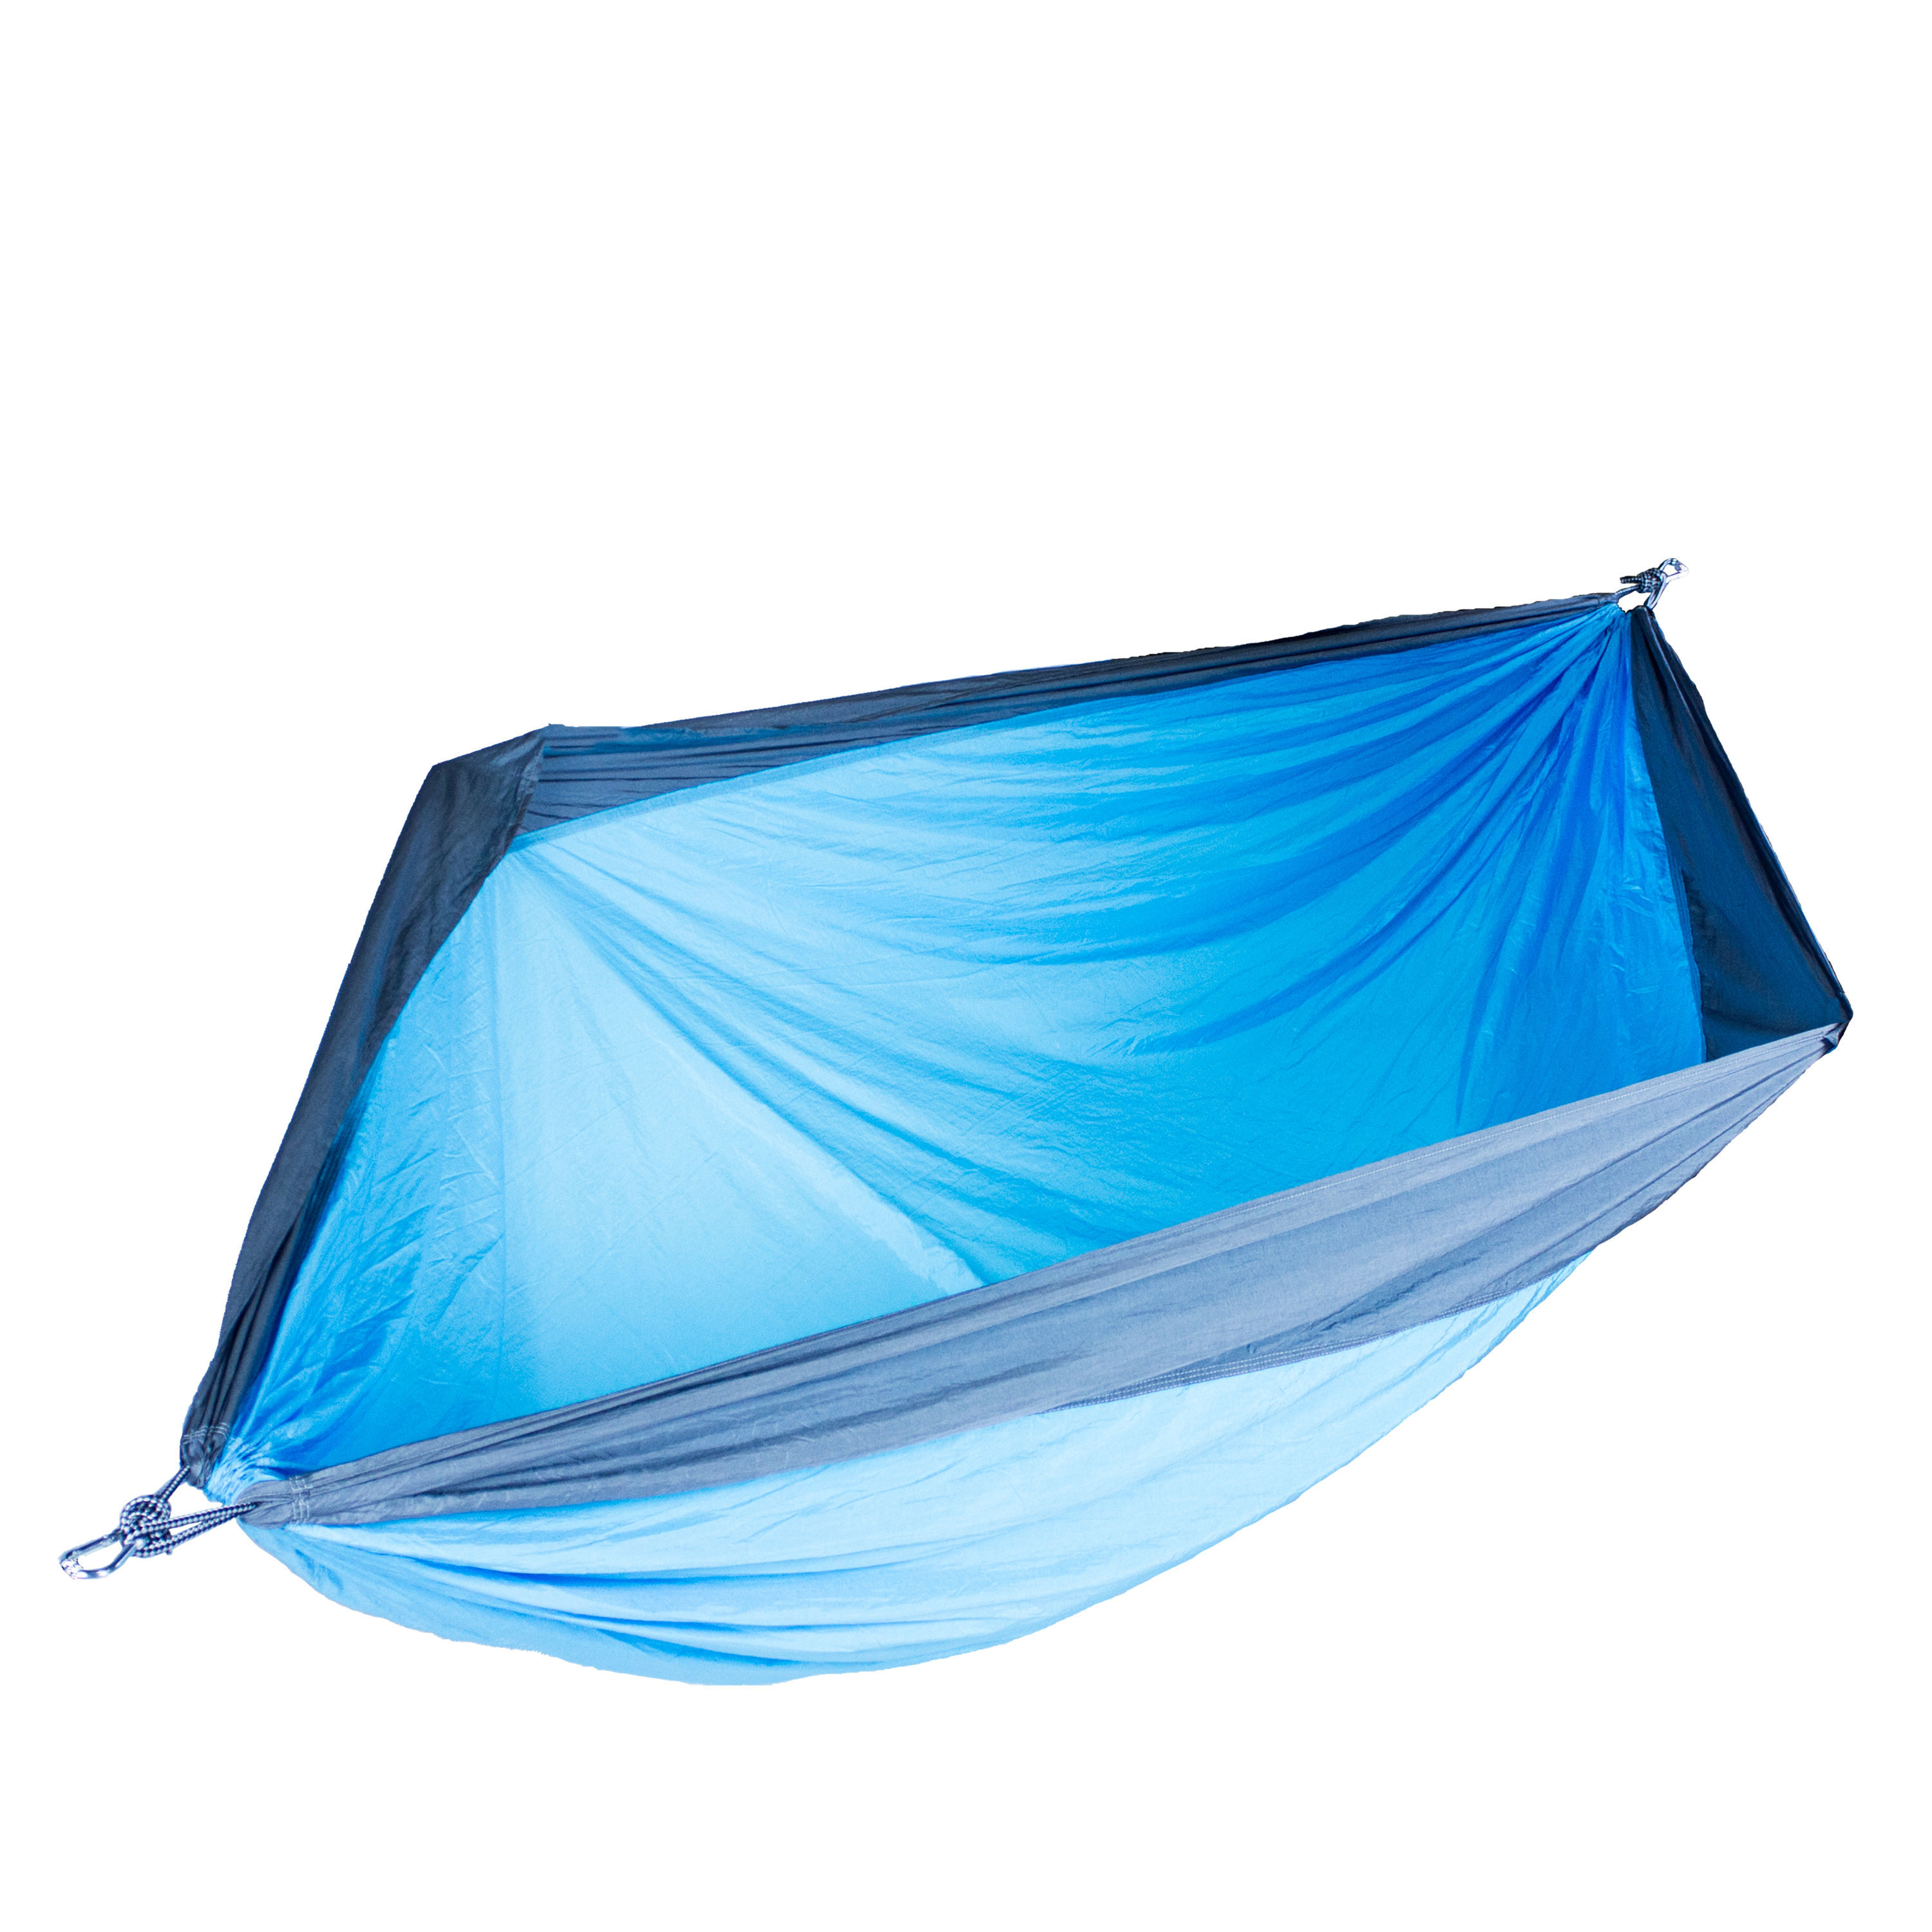 Blue and Grey Double Person Travel Camping Hammock